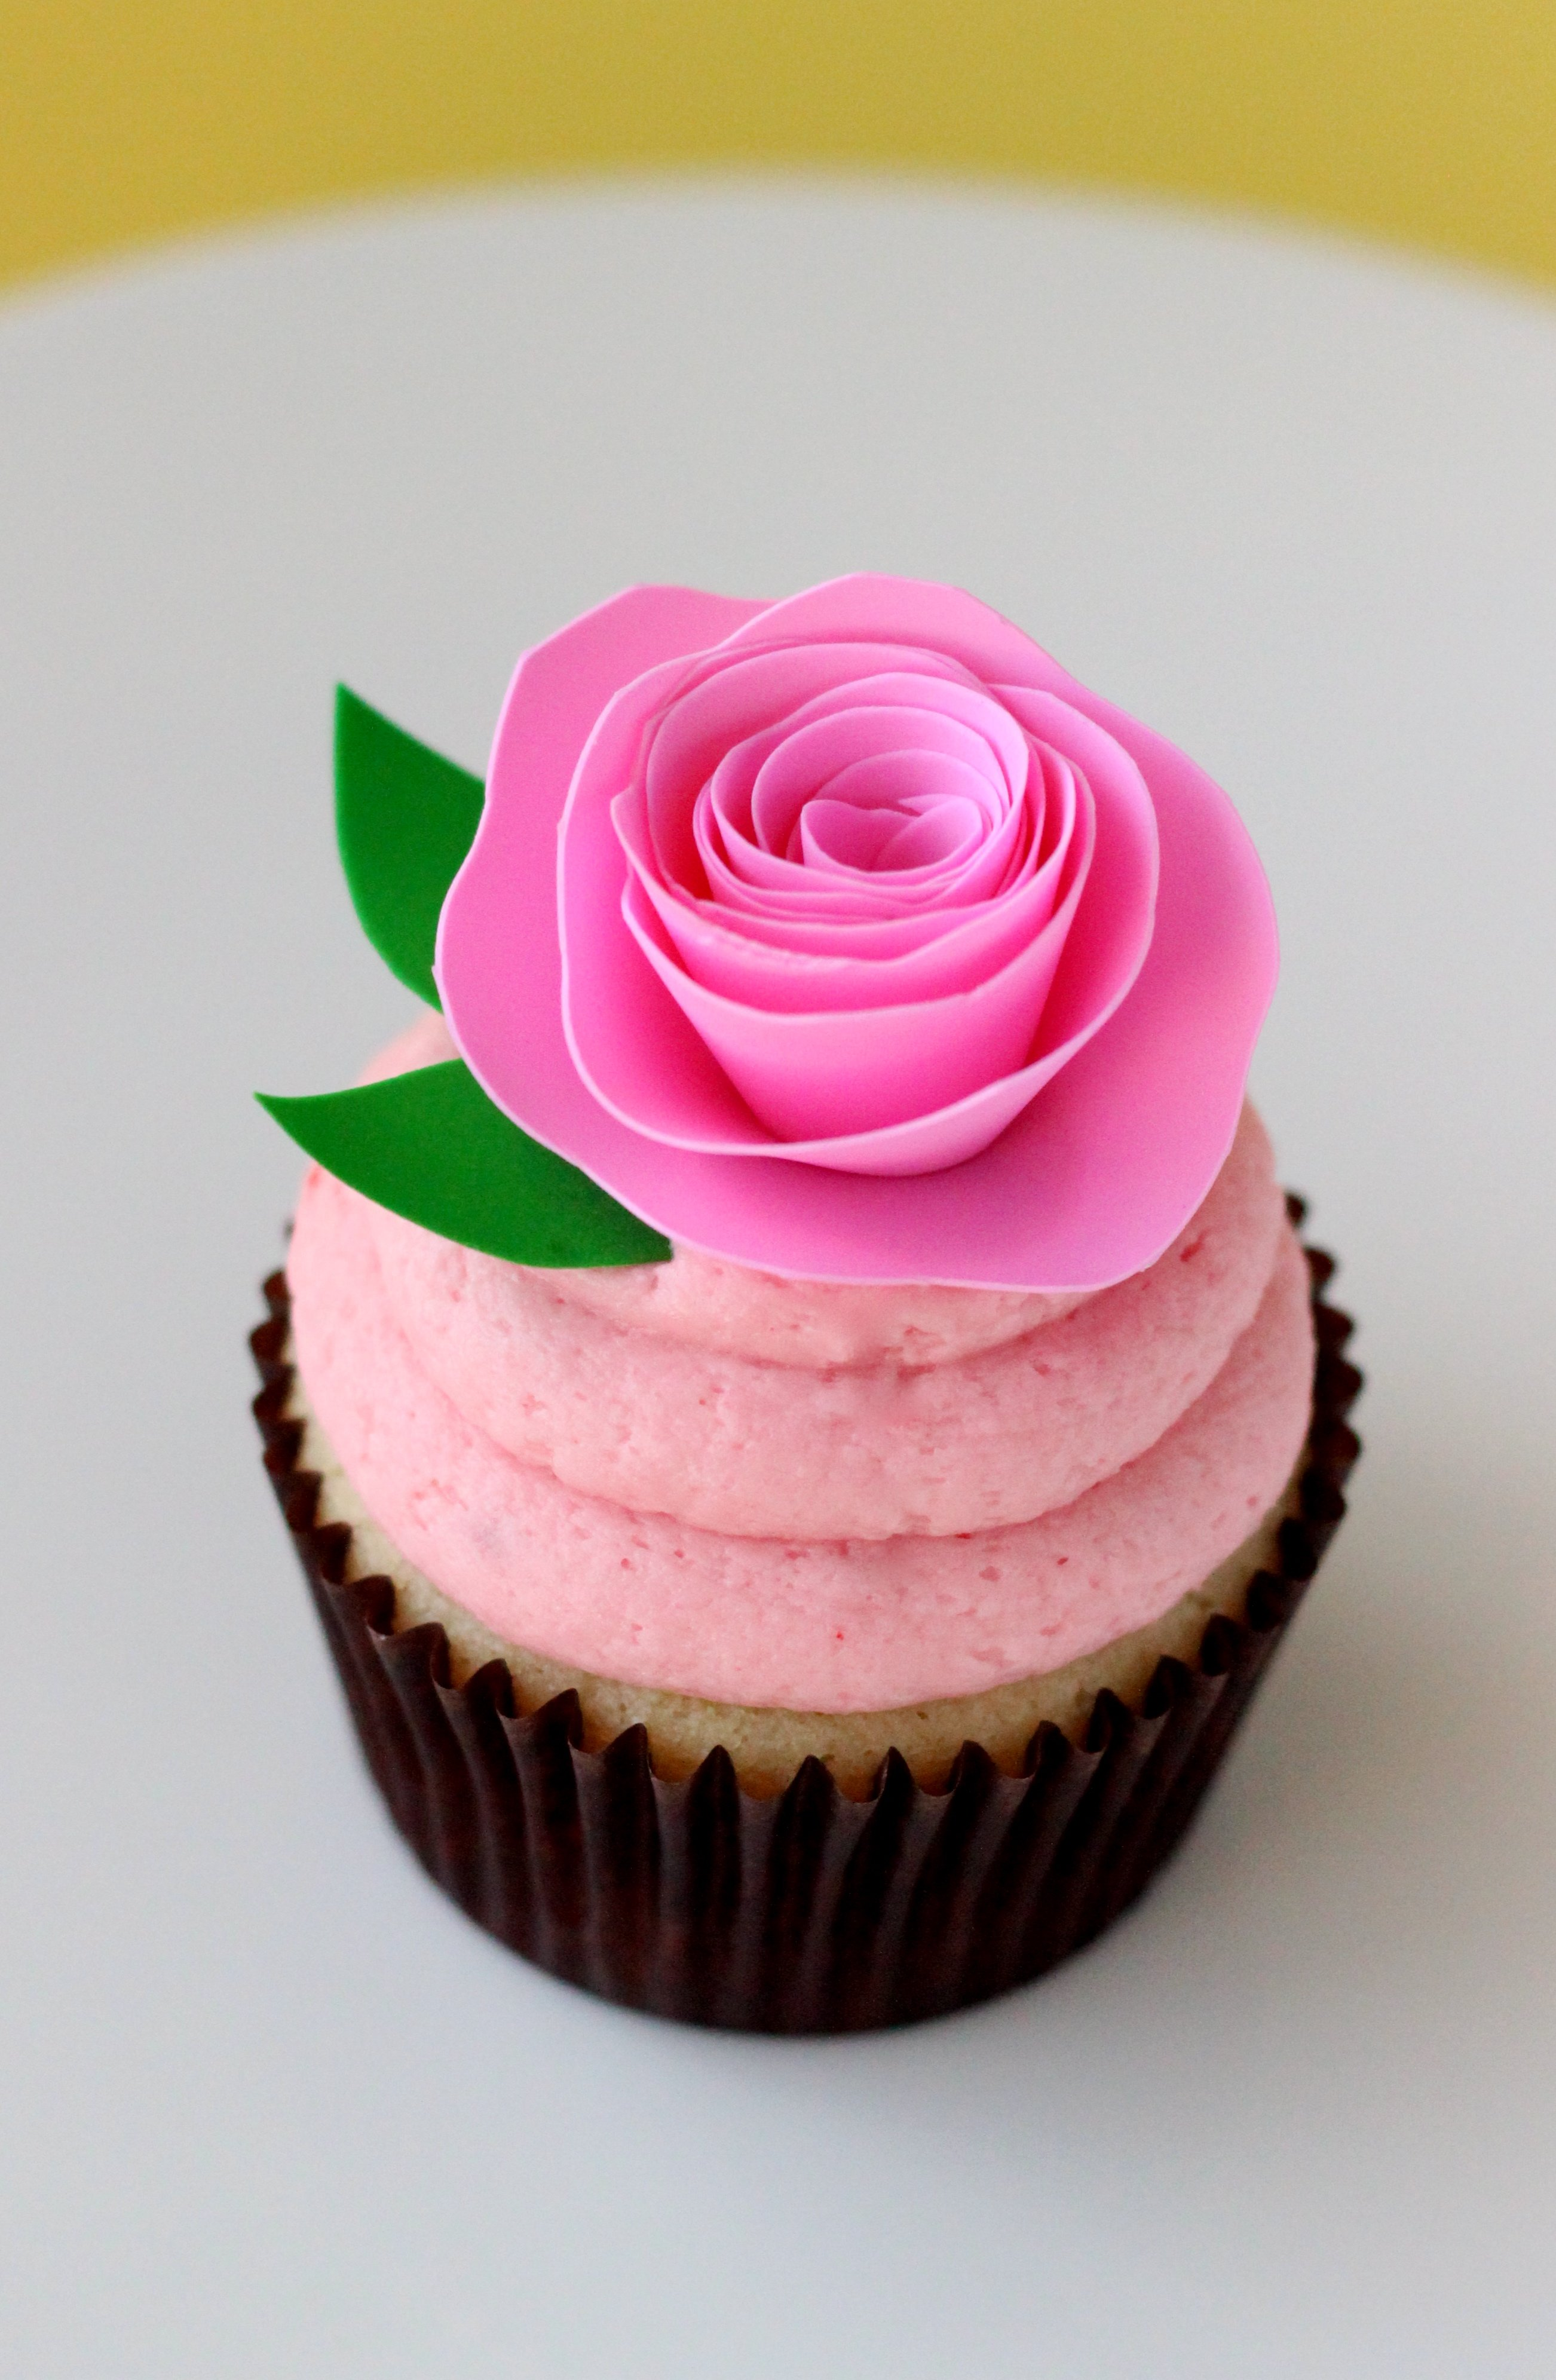 Using Edible Icing Sheets - Your Cup of Cake